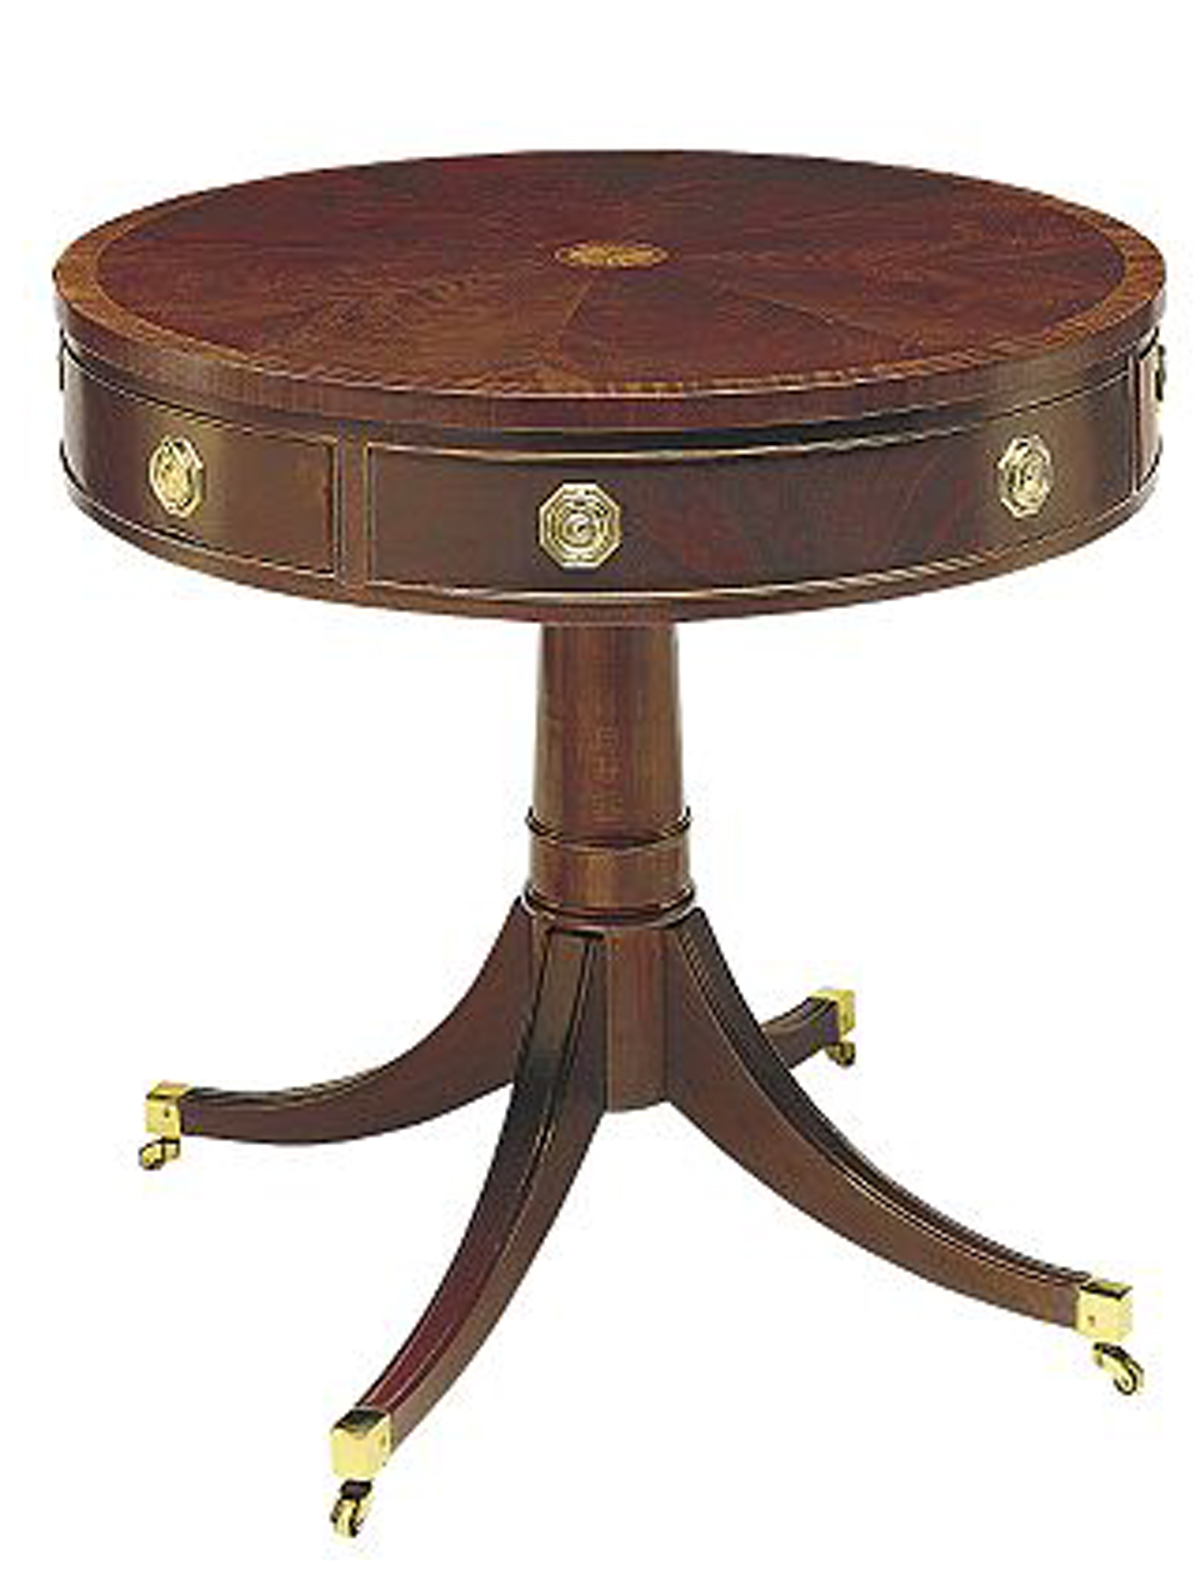 Pedestal Drum Table